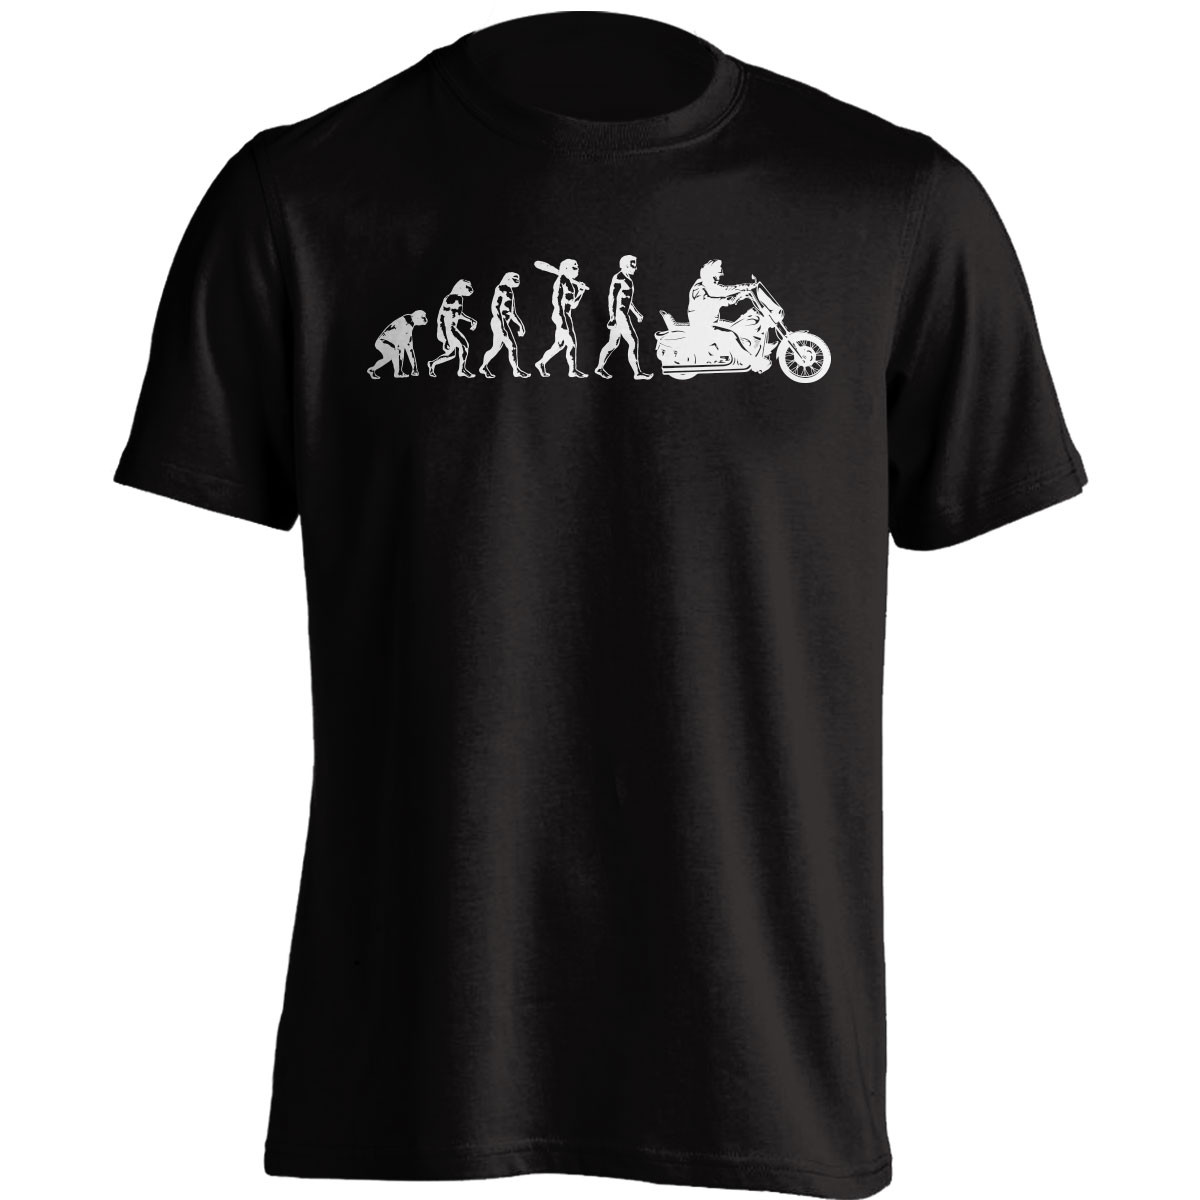 Human Evolution Harley T-Shirt